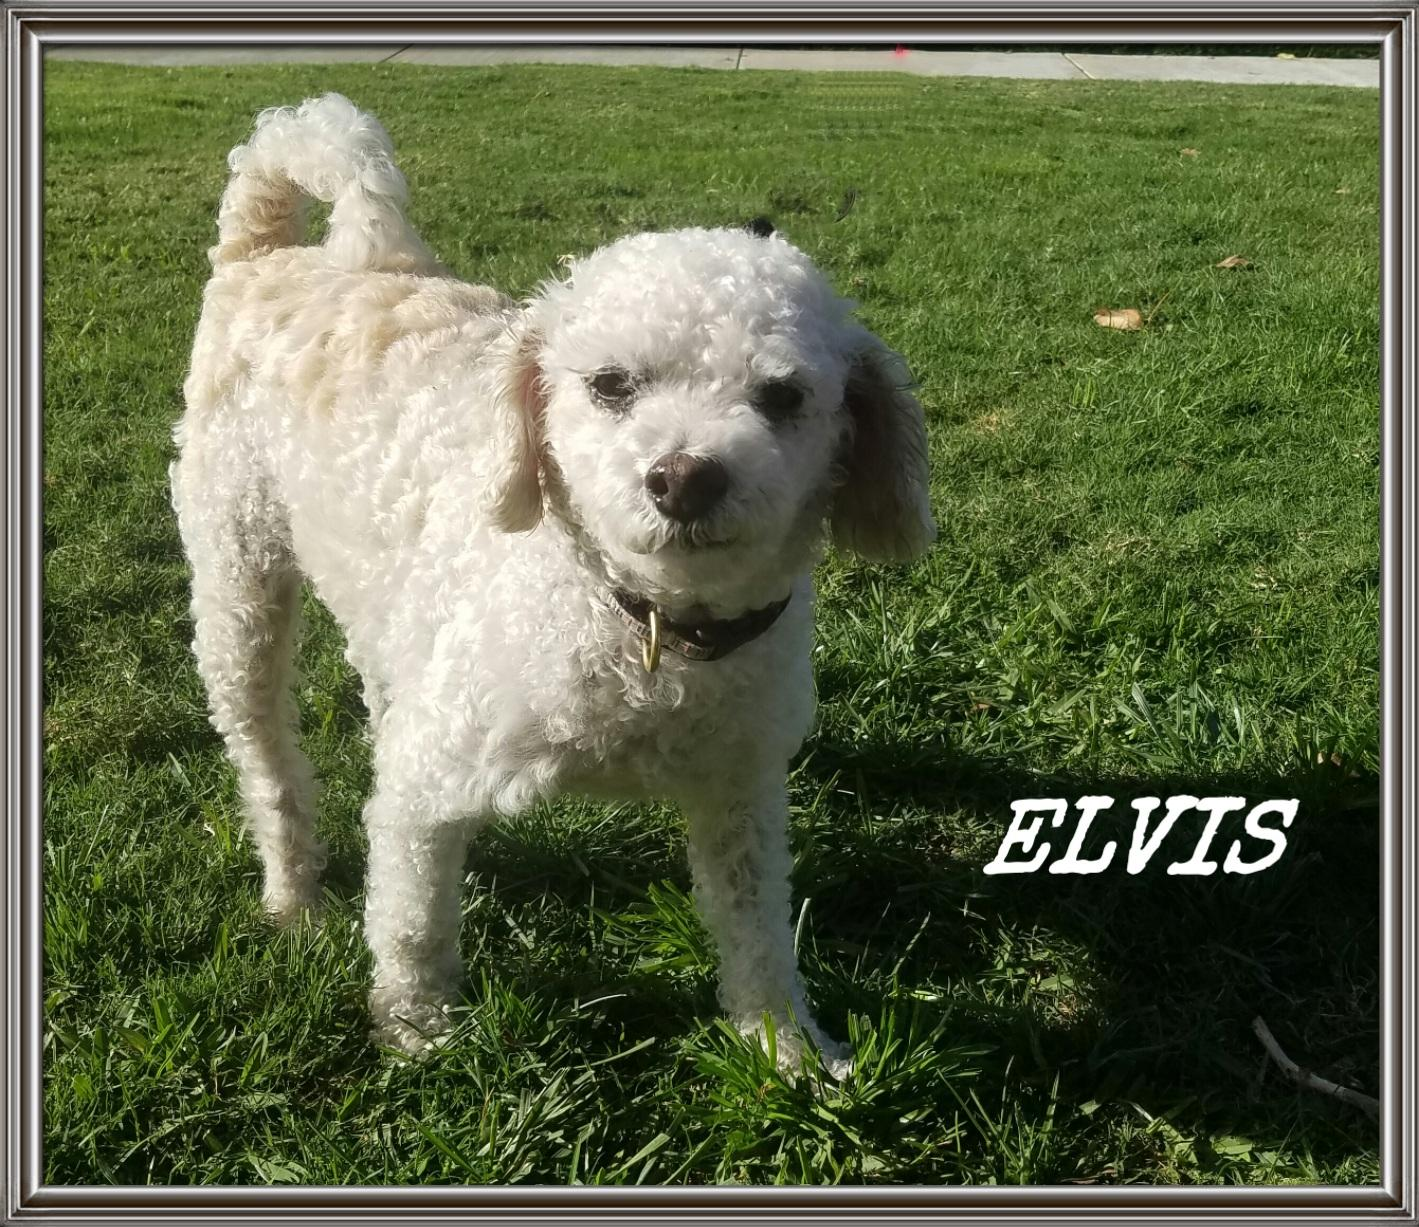 pet-of-the-week-elvis